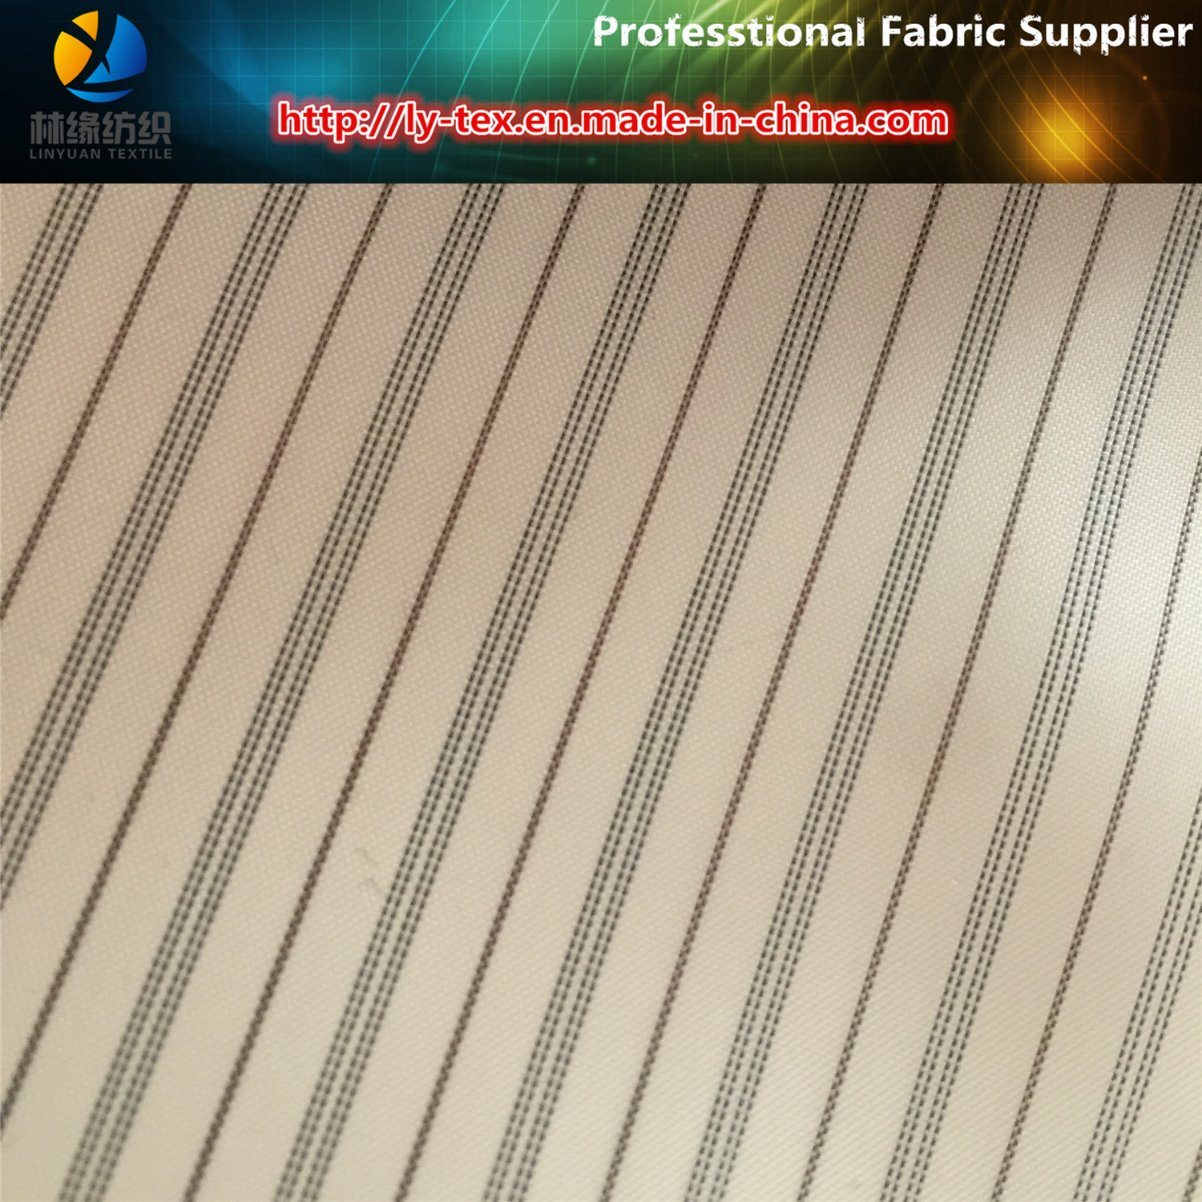 Upscale Men Suit Lining in Polyester Woven Stripe Fabric (S180.181) pictures & photos